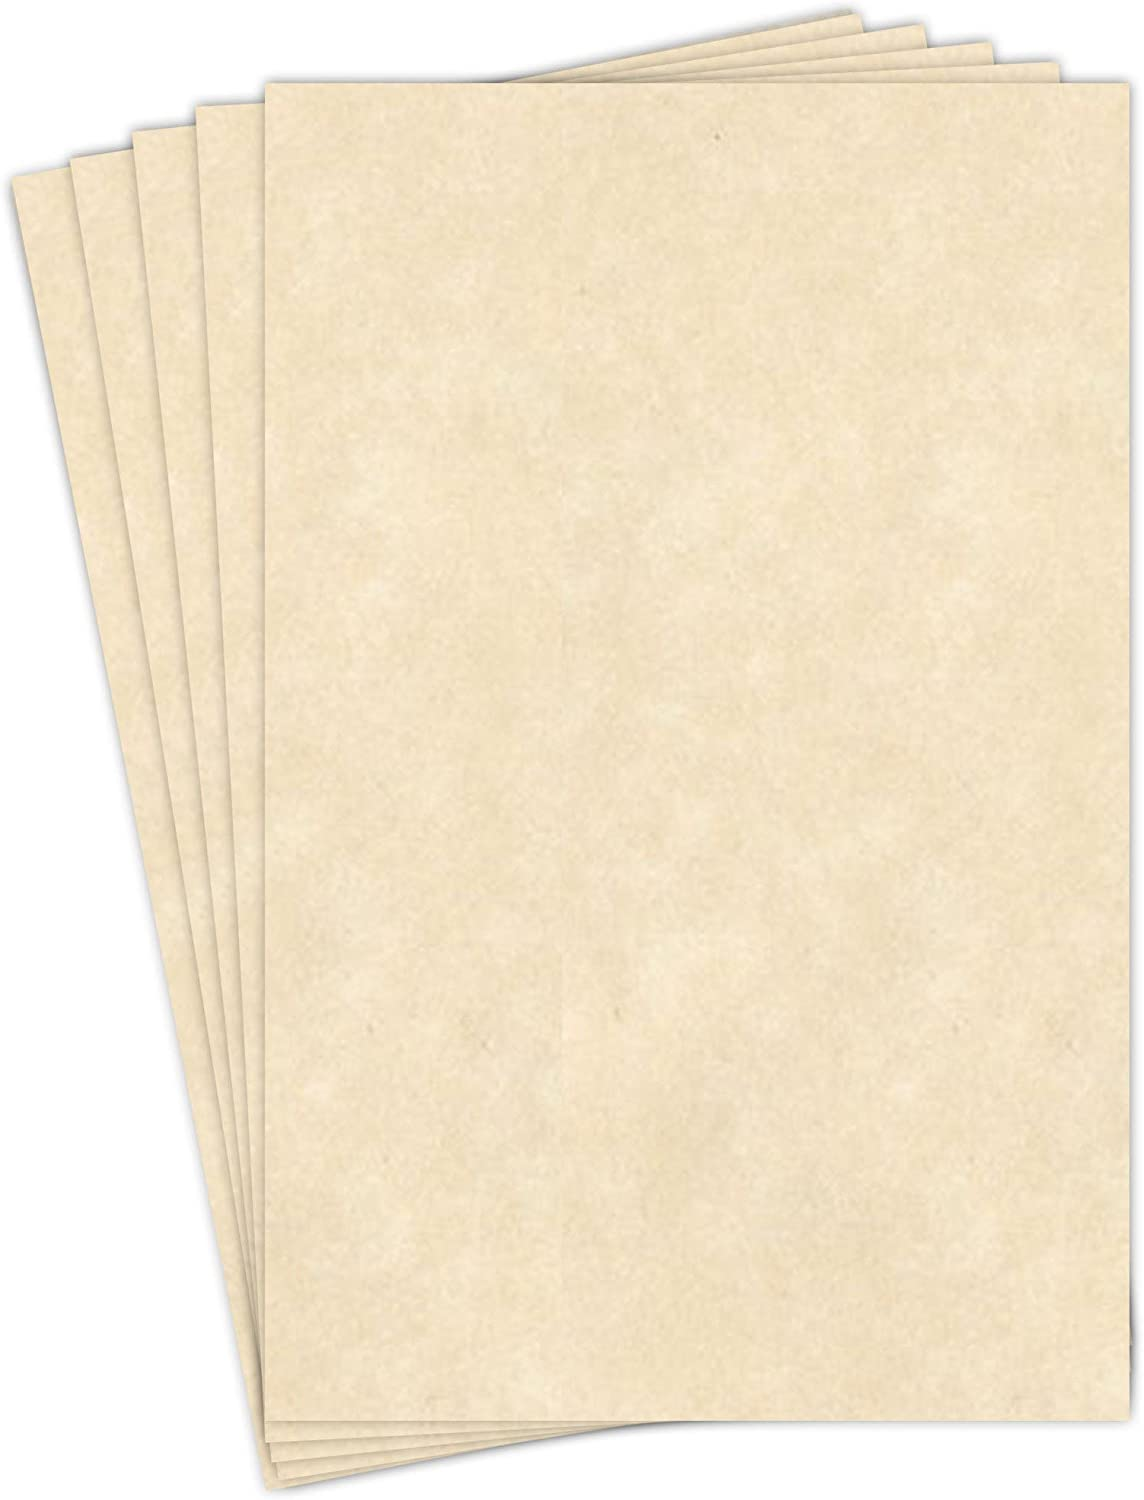 Stationery Parchment, 65lb. Cover Stock 11 X 17 Inches, 50 Sheets (Natural)